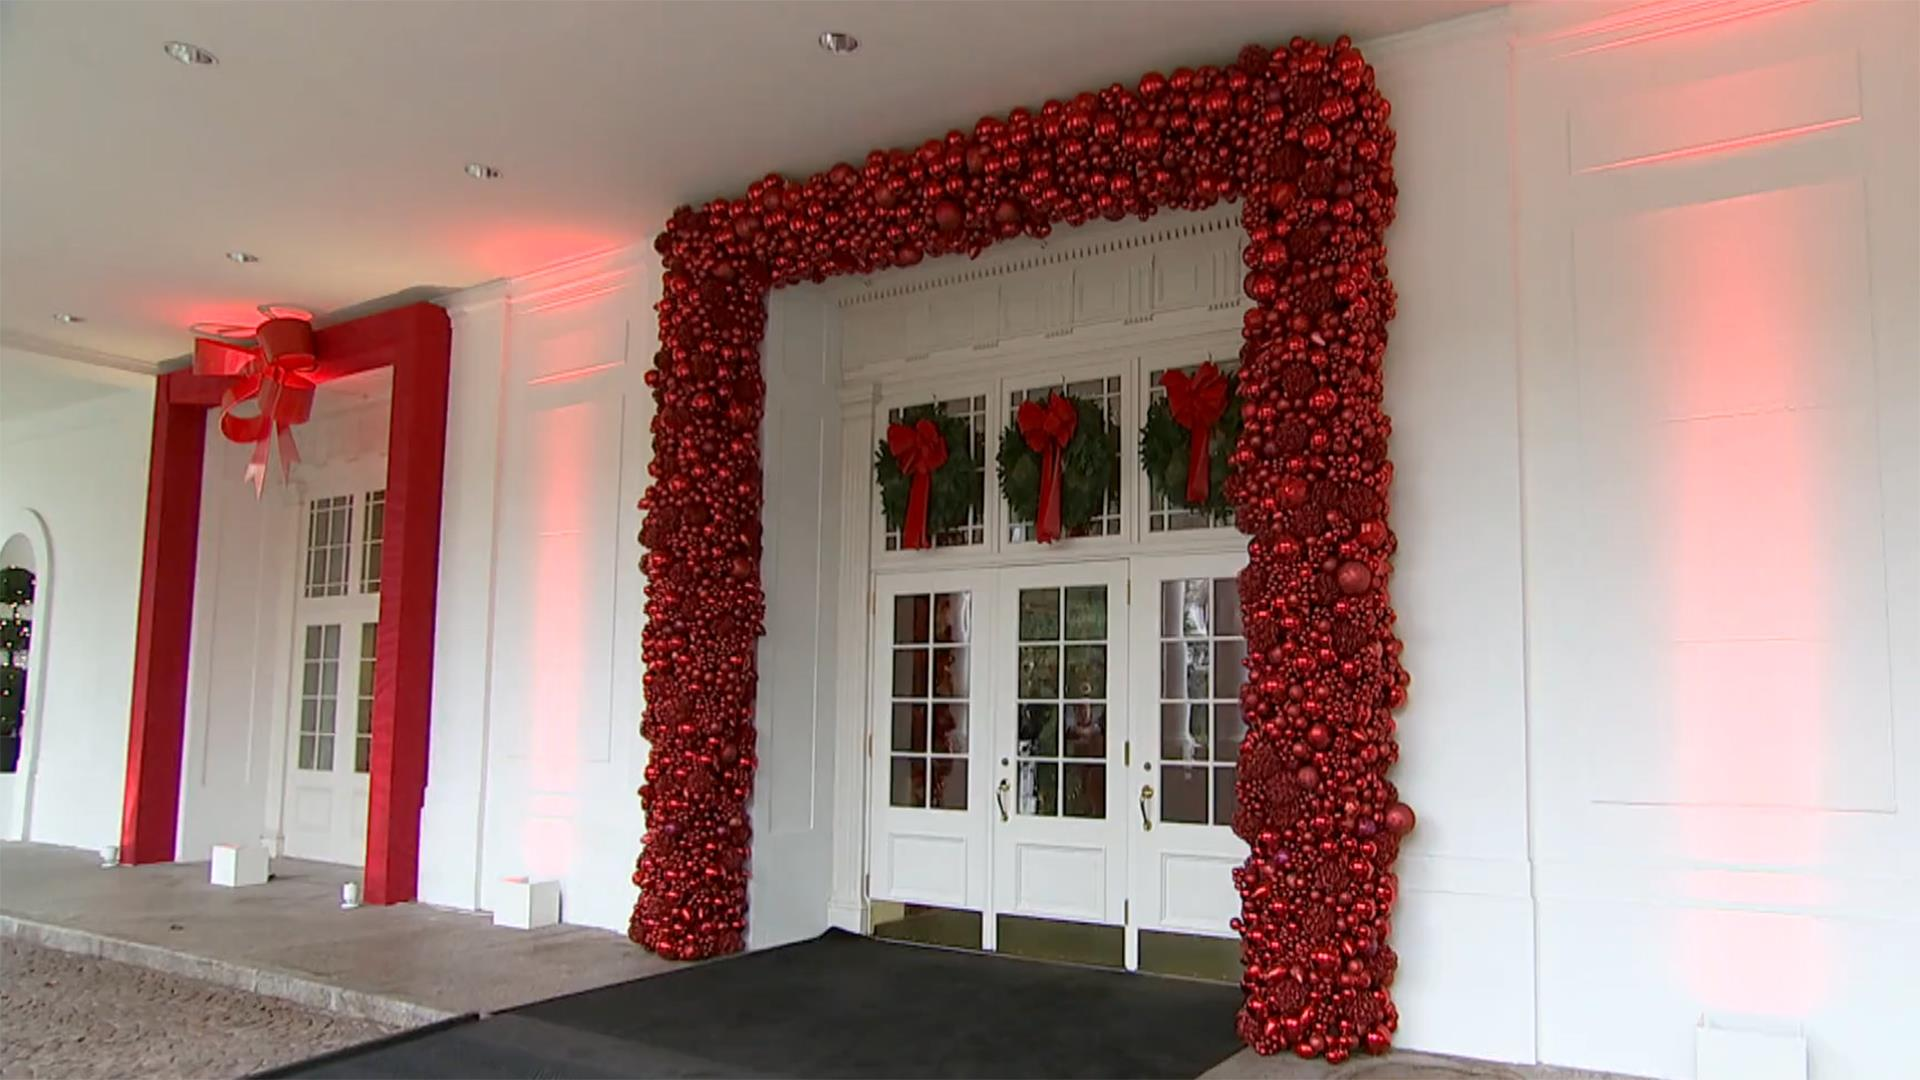 & An Inside Look at the White House\u2019s 2016 Christmas Decorations